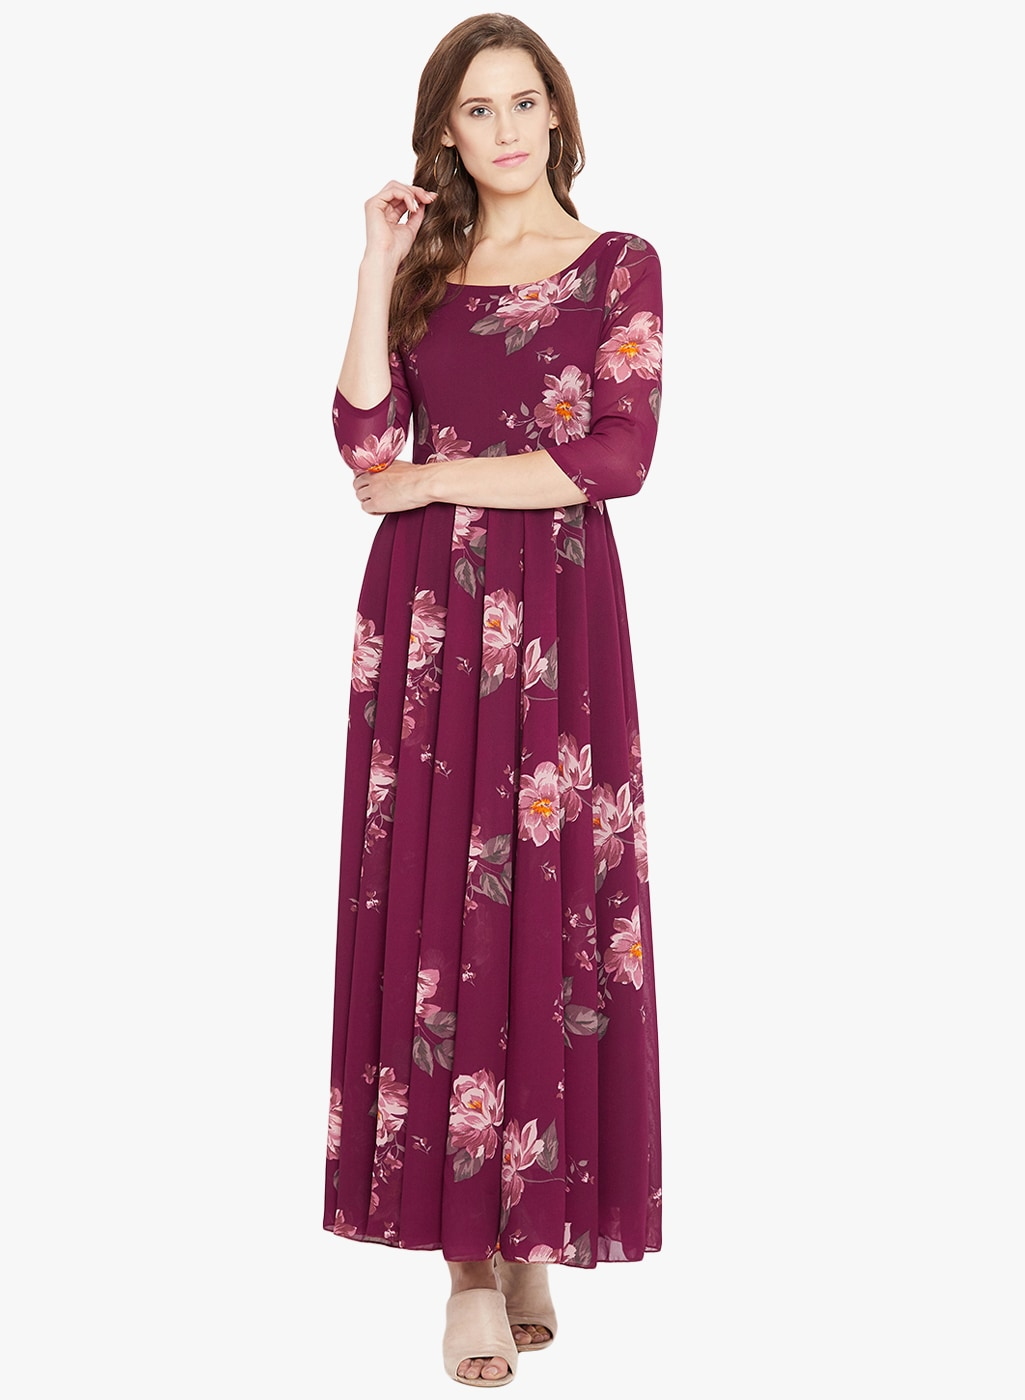 8a6561c909be Women Apparel - Buy Women Apparel online in India - Jabong